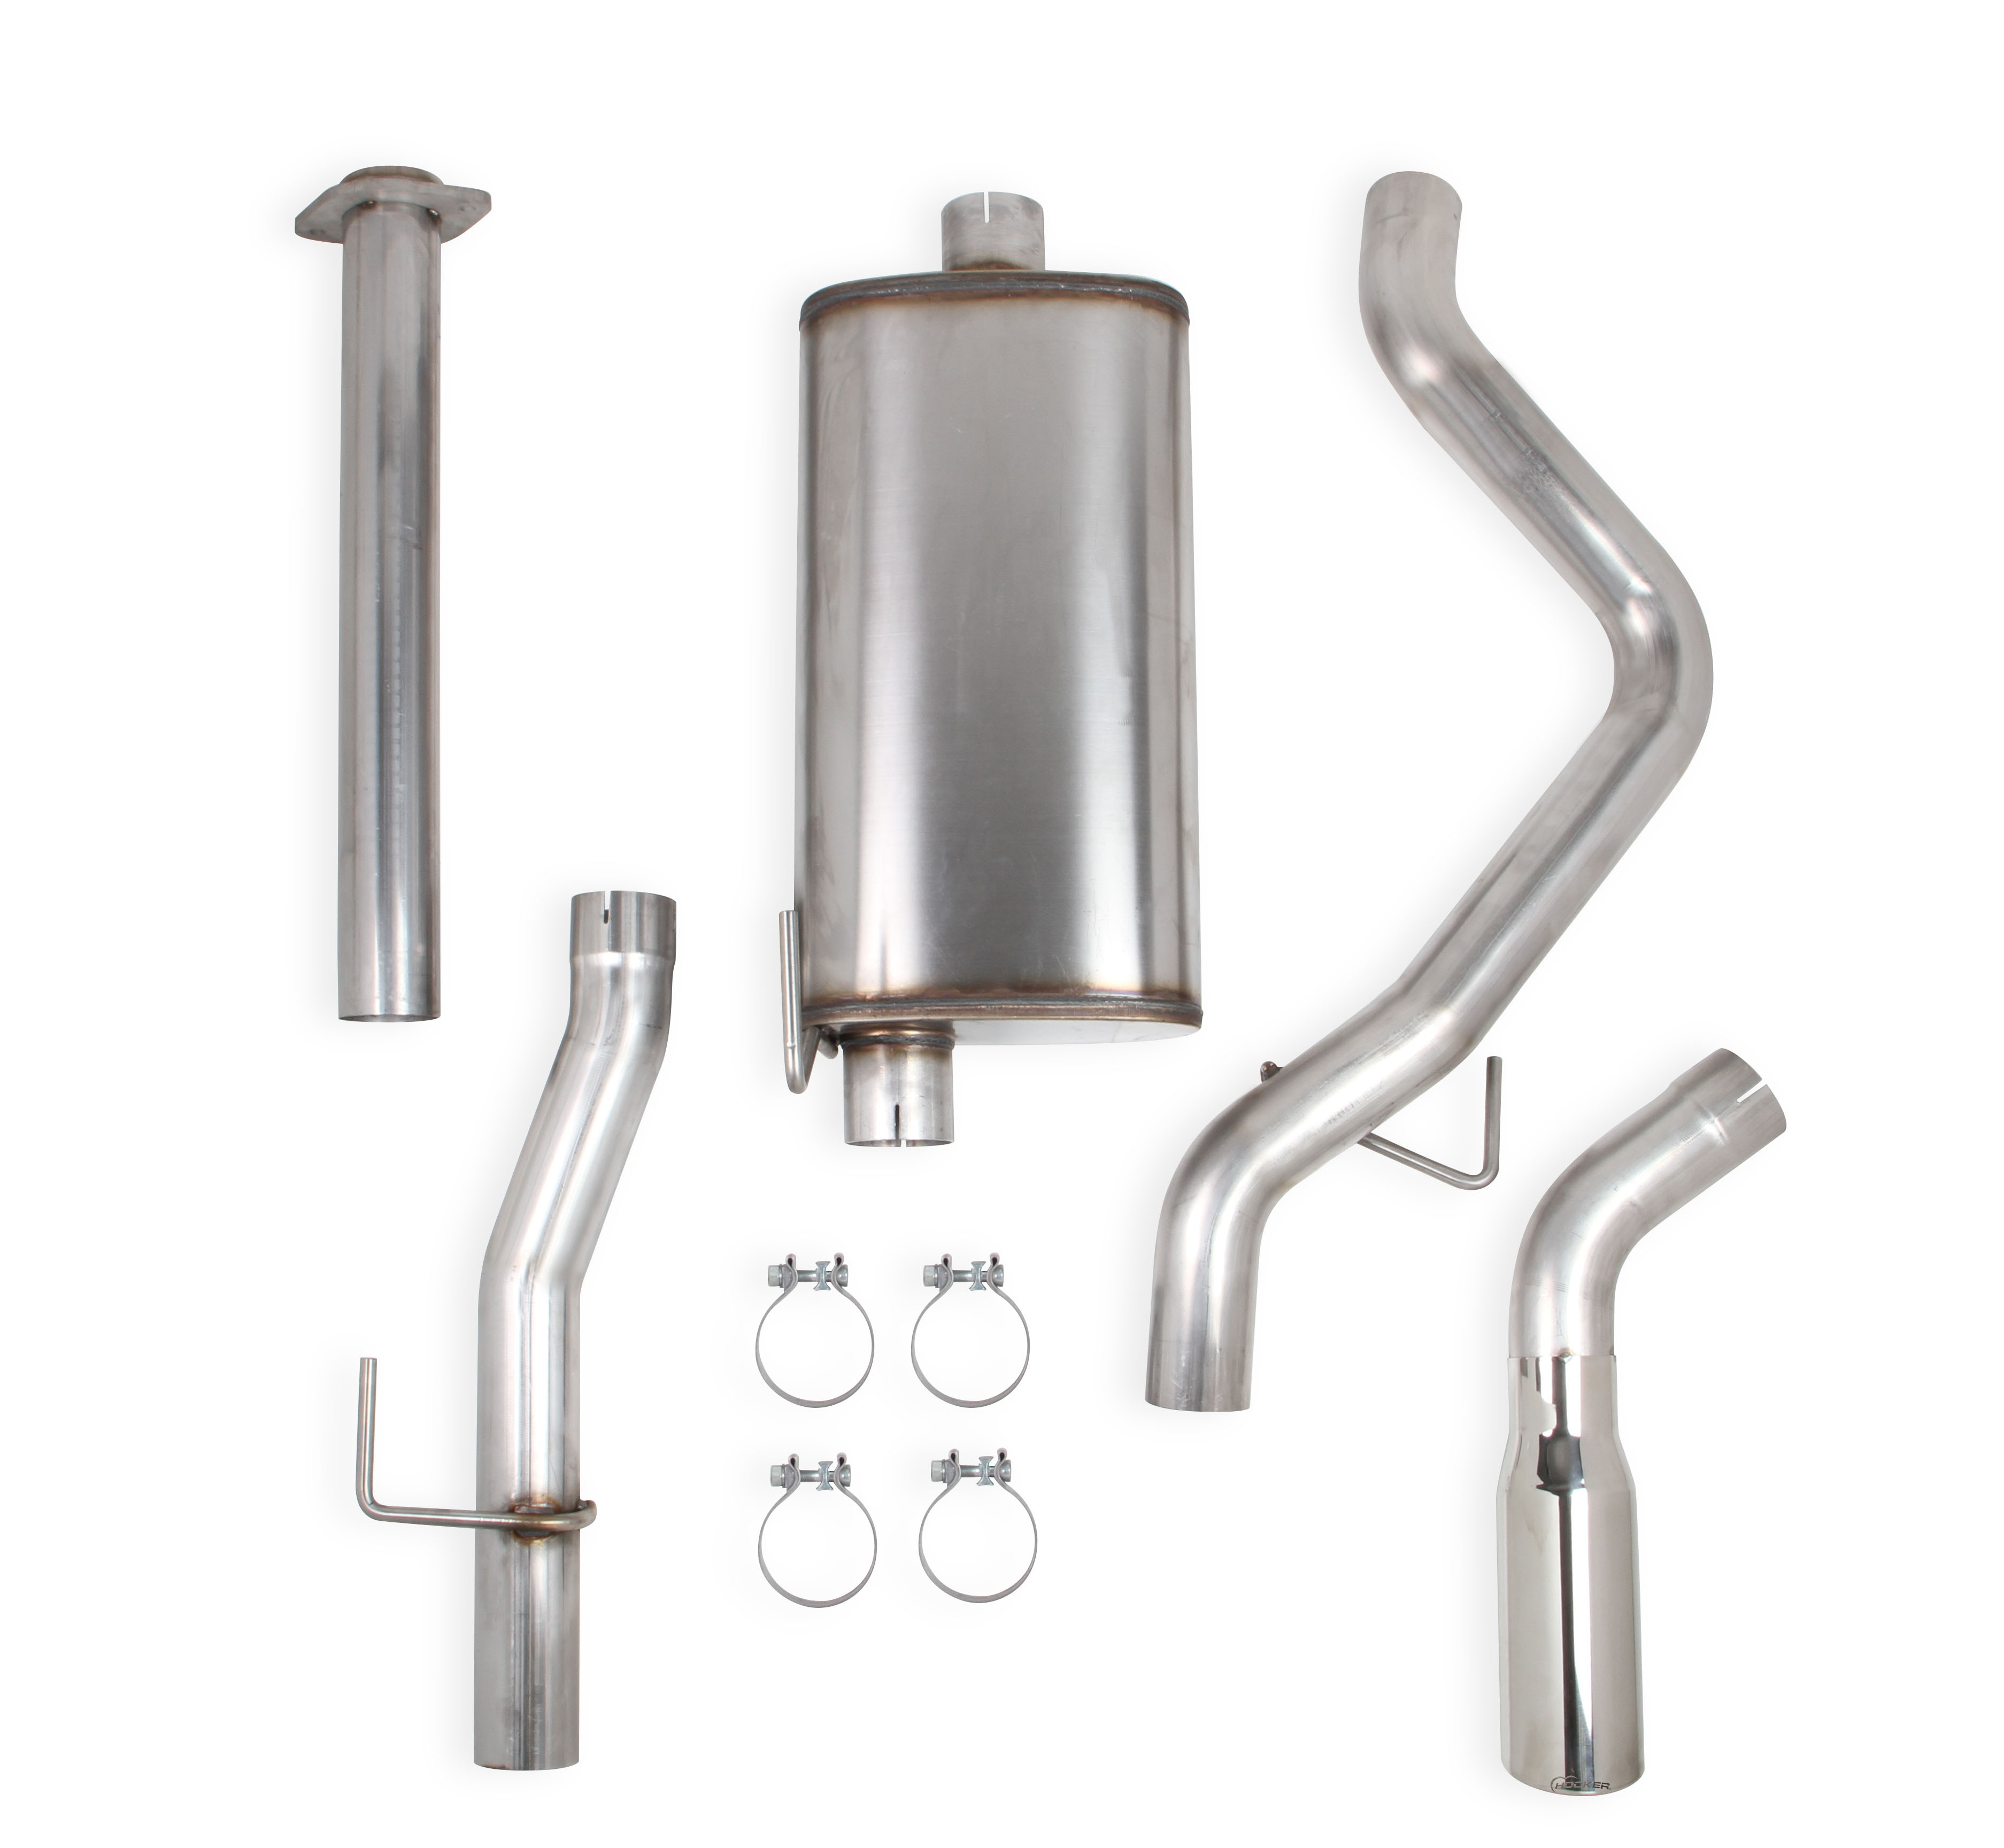 2009-2010 Ford F150 4.6/5.4L V8, Stainless Steel Cat-Back, Single Exit